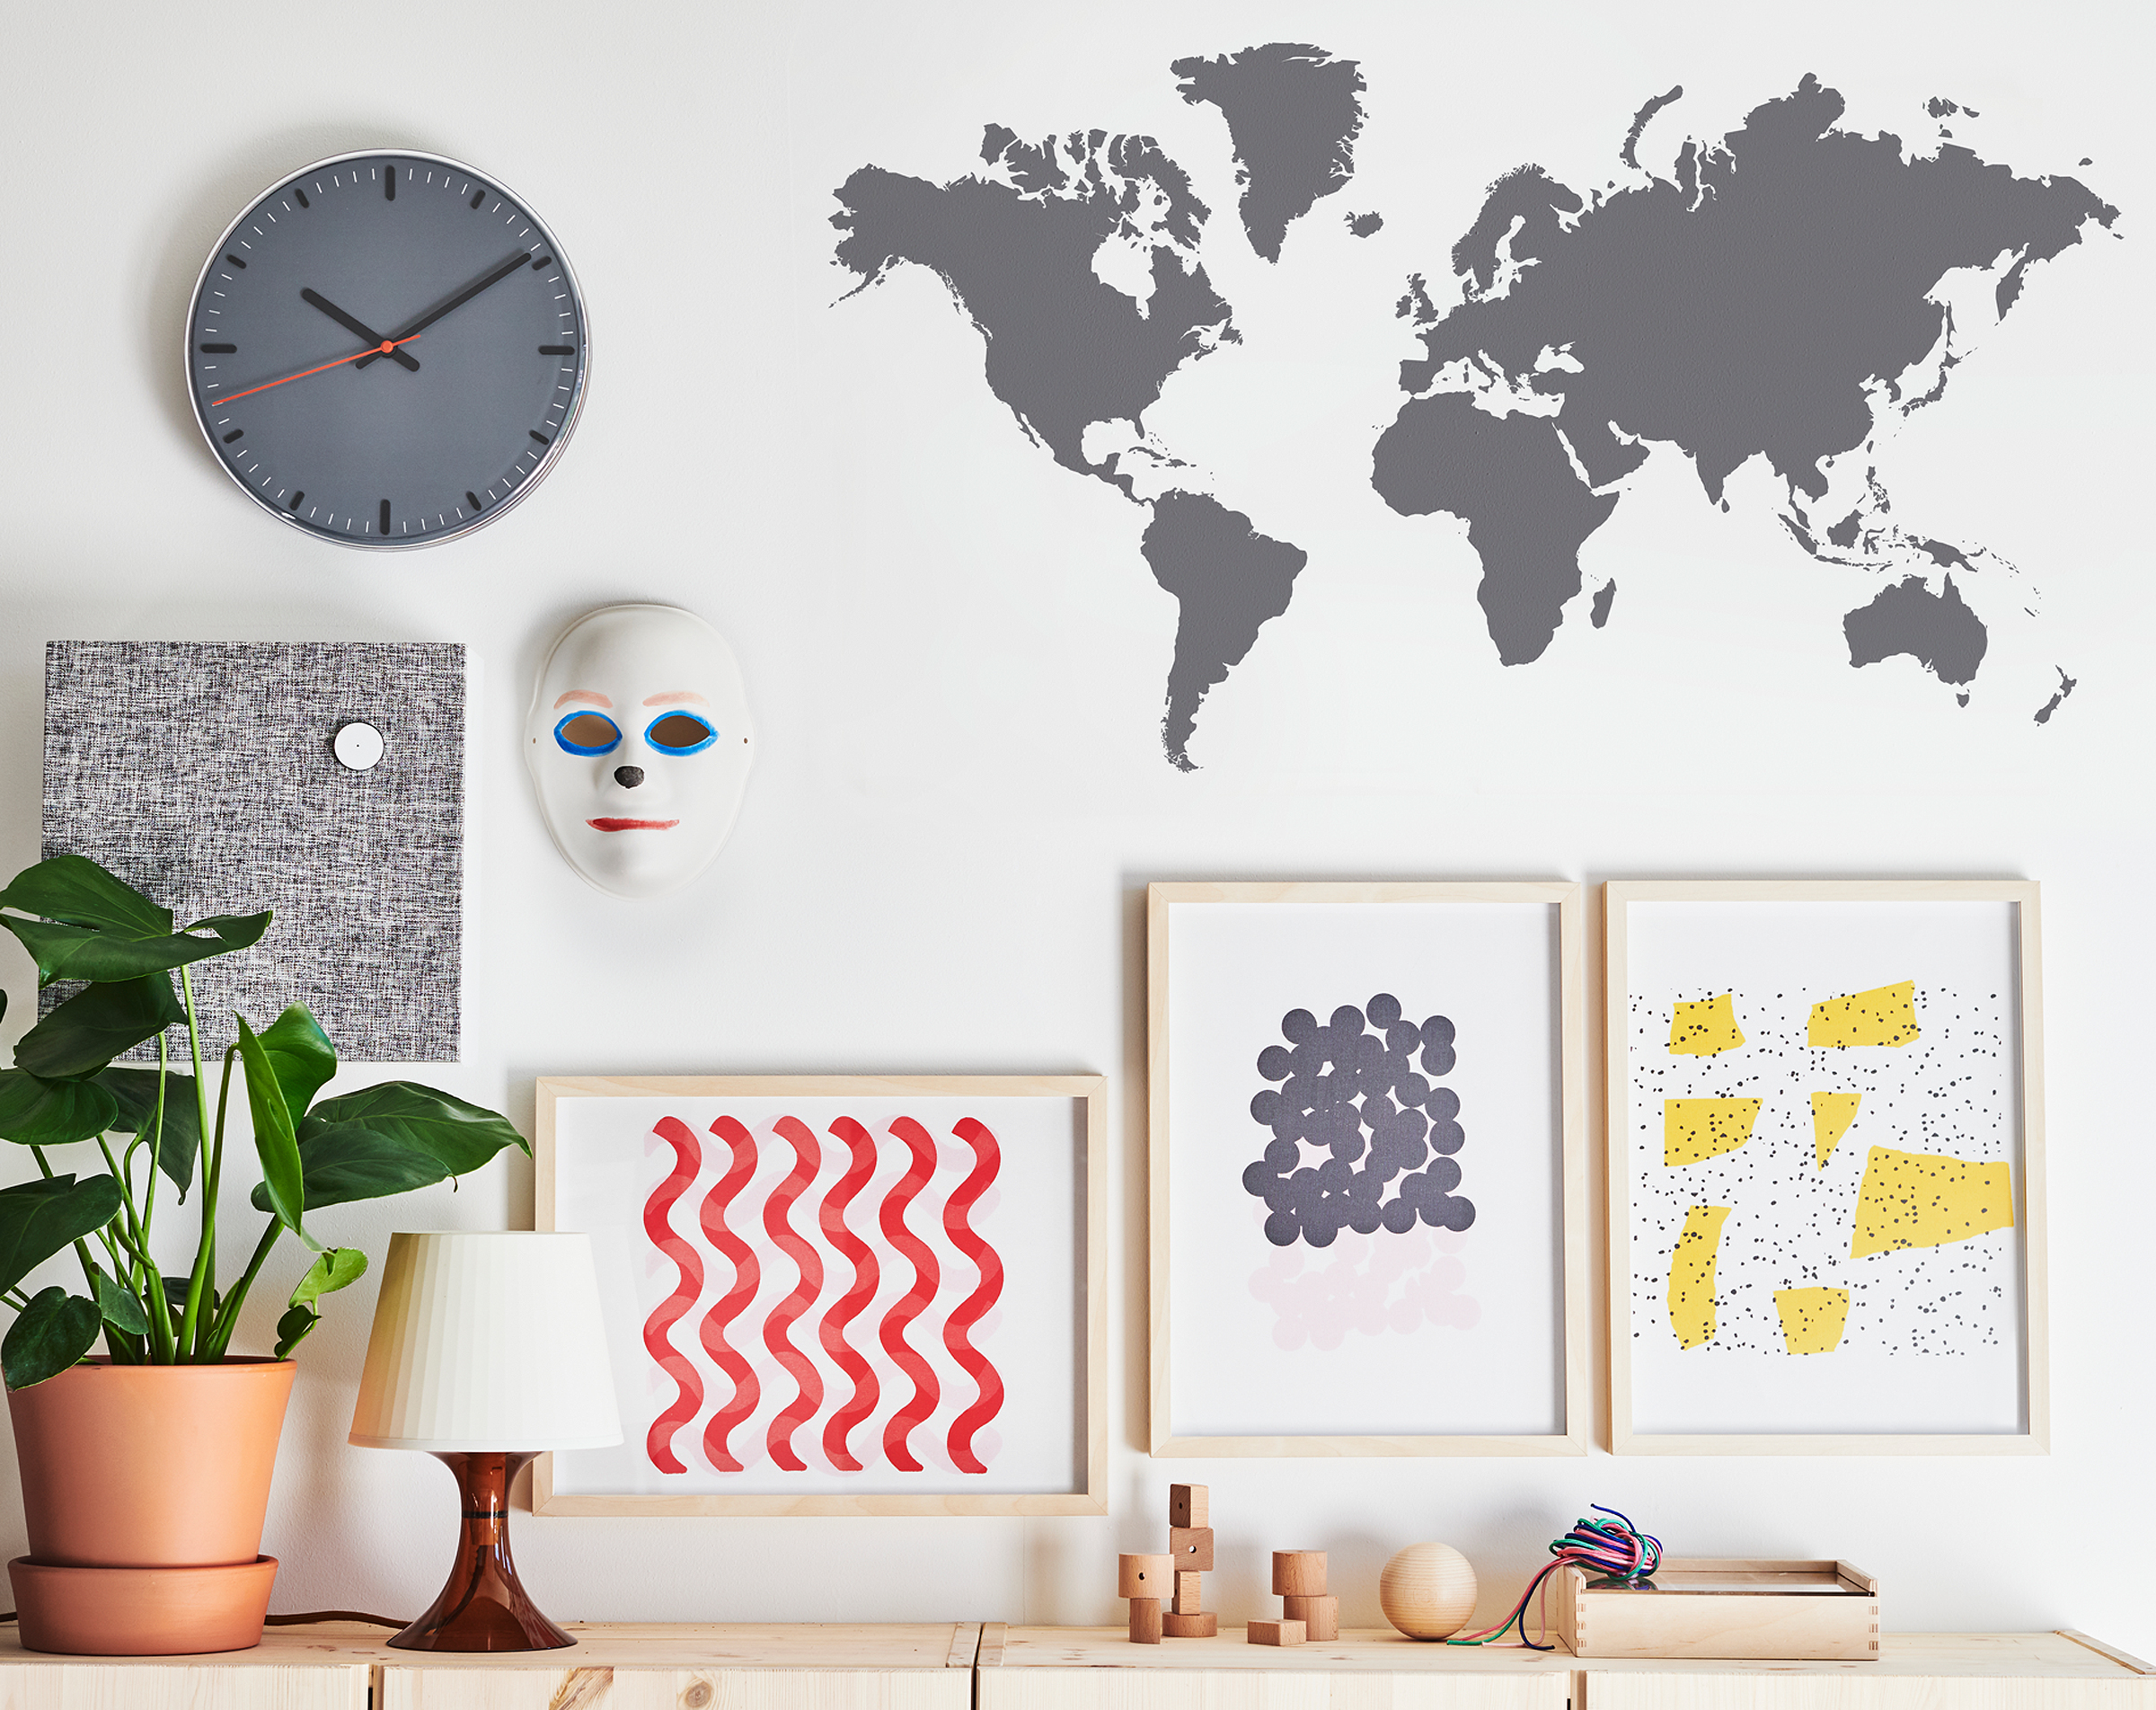 The top of a row of cabinets. Art, a clock, a mask and a world map are on the wall above.